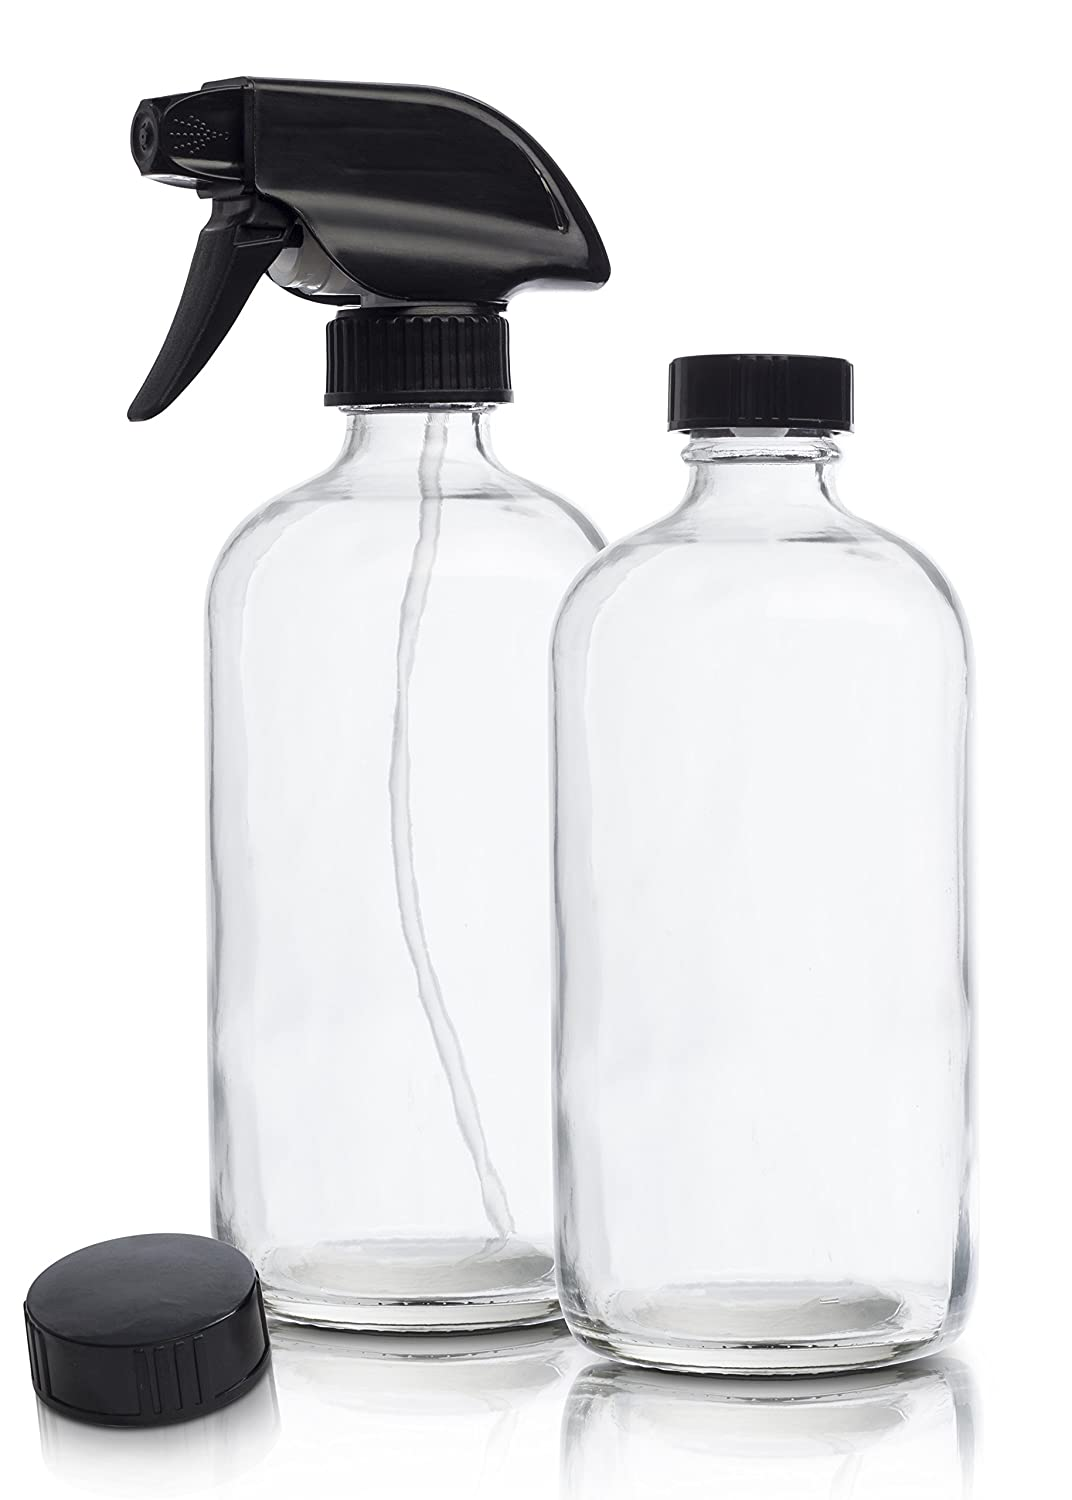 efc3487b3aa0 Empty Clear Glass Spray Bottles | 2 Pack 16 Oz Refillable Sprayer for  Essential Oil | Water, Kitchen, Bath,...